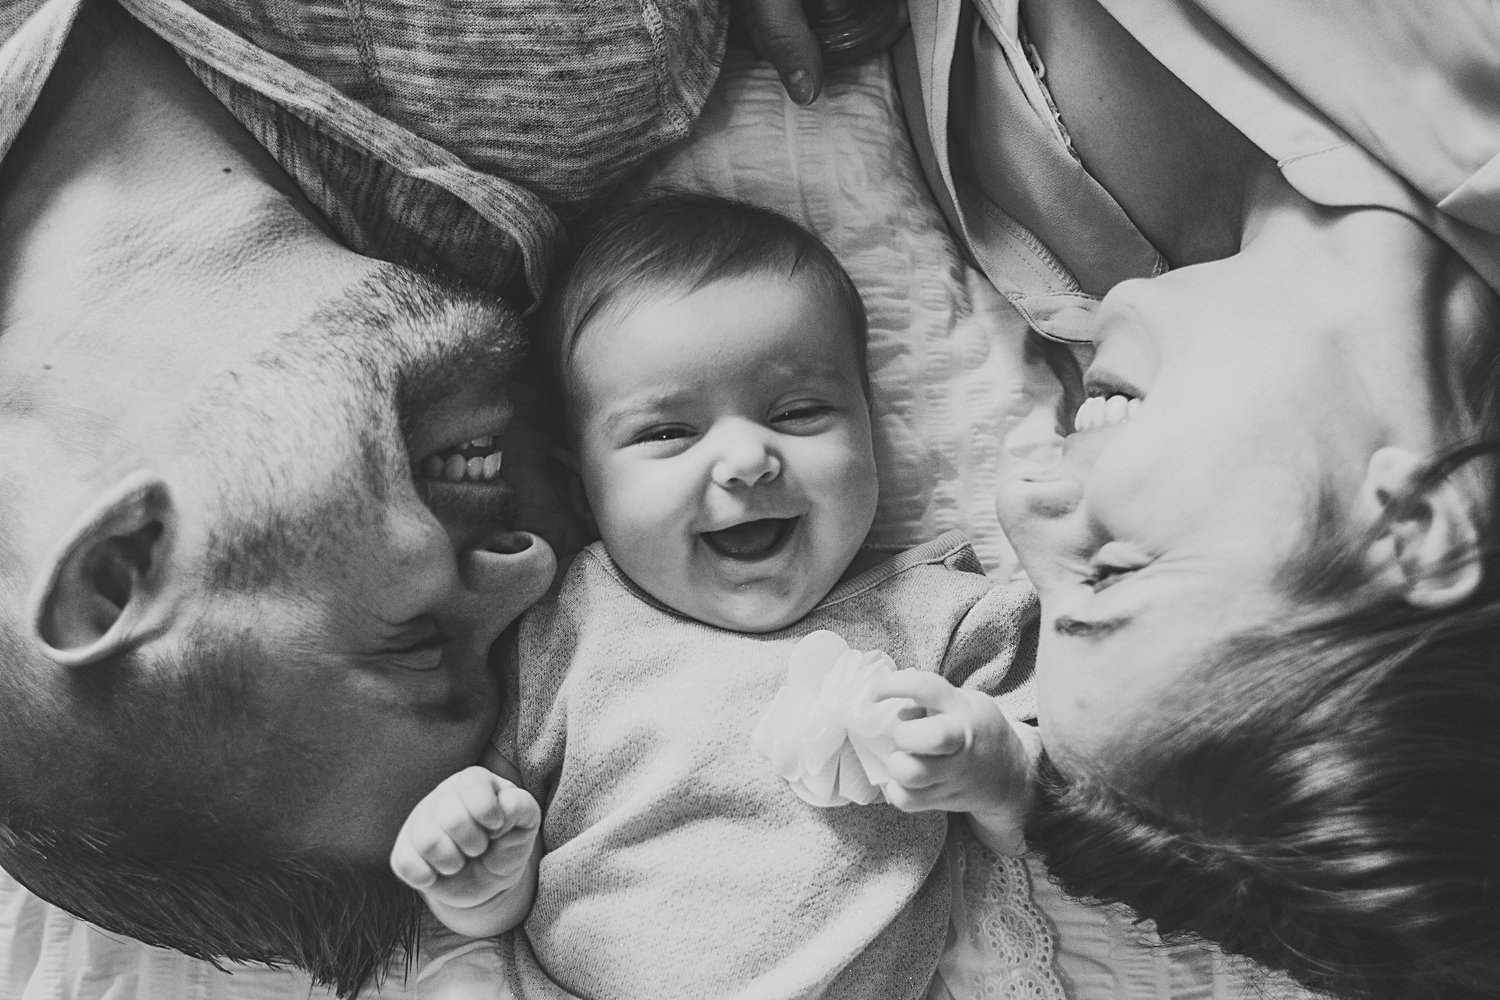 Family portrait with baby on bed with mom and dad